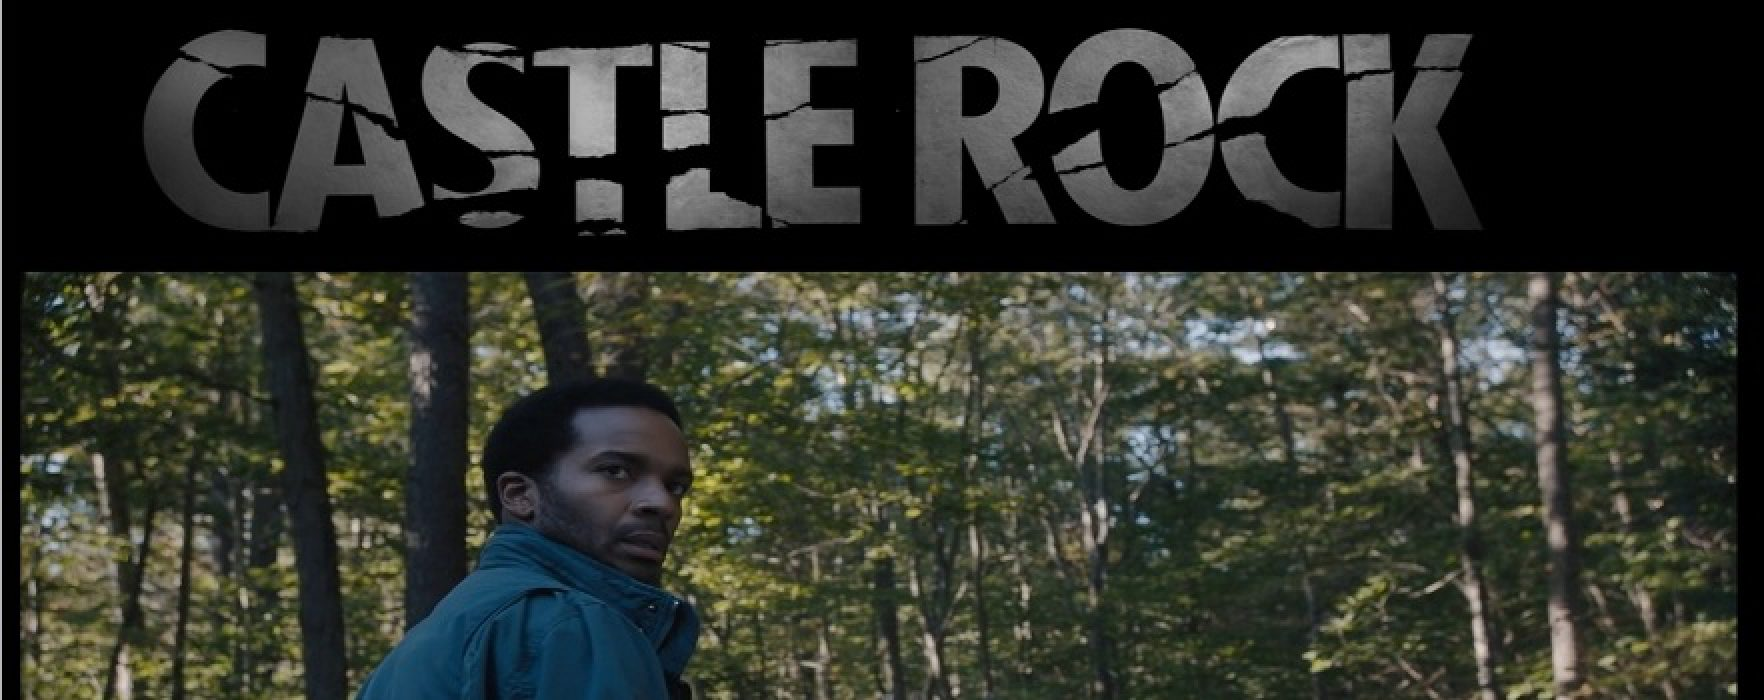 Castle Rock: All the Discomforts of Home